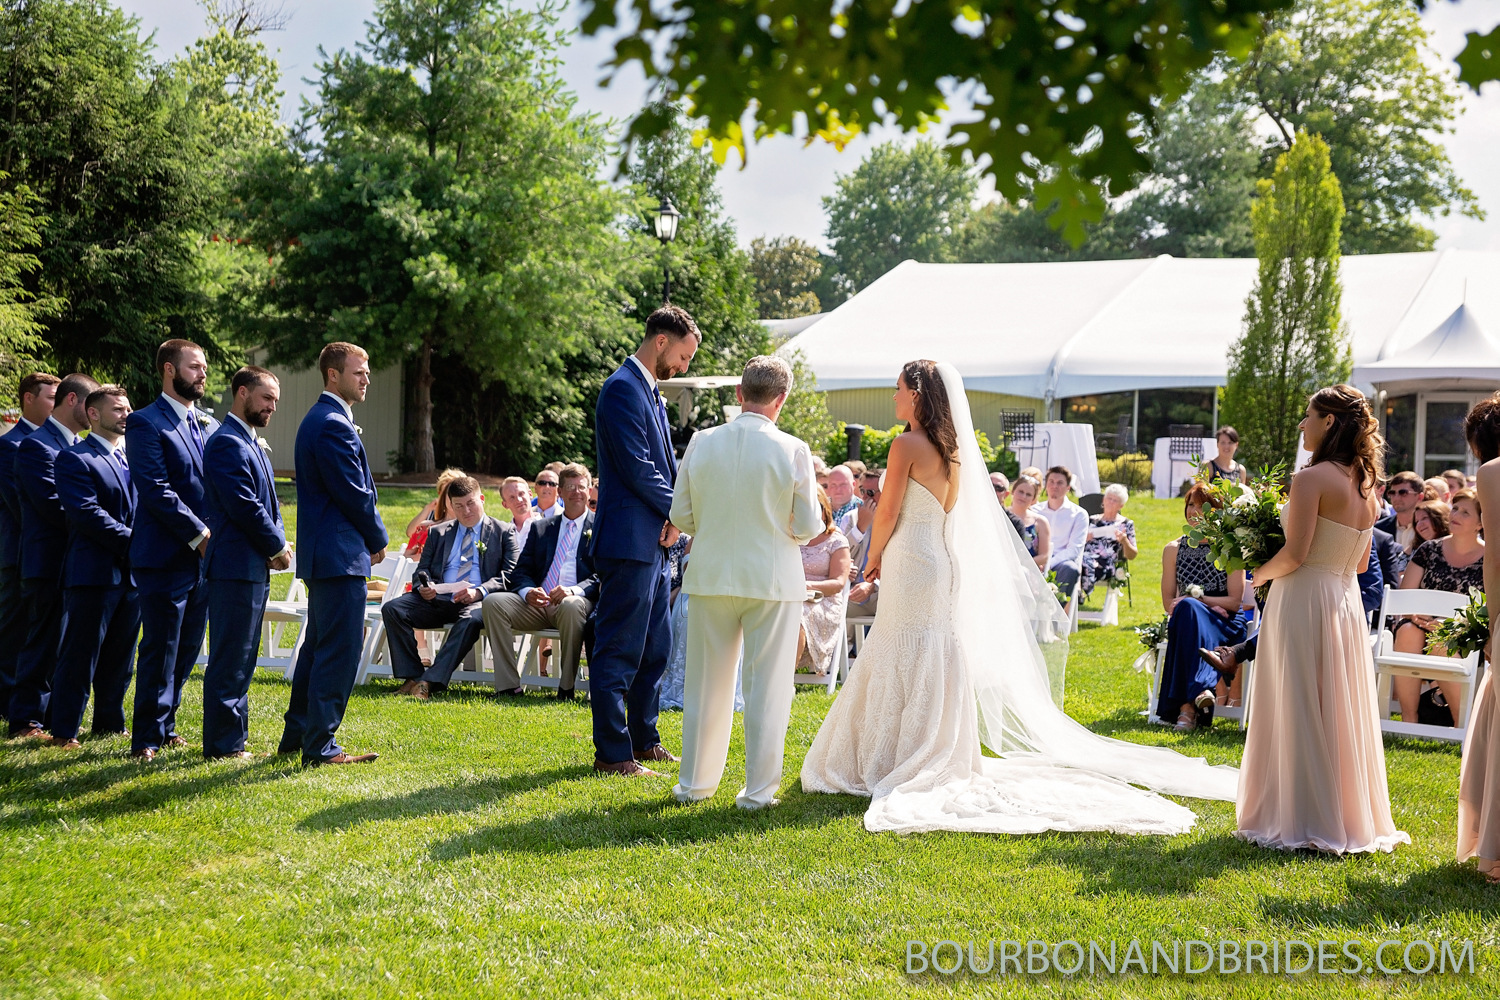 Marriott-Griffin-Gate-Ceremony-wedding-4.jpg